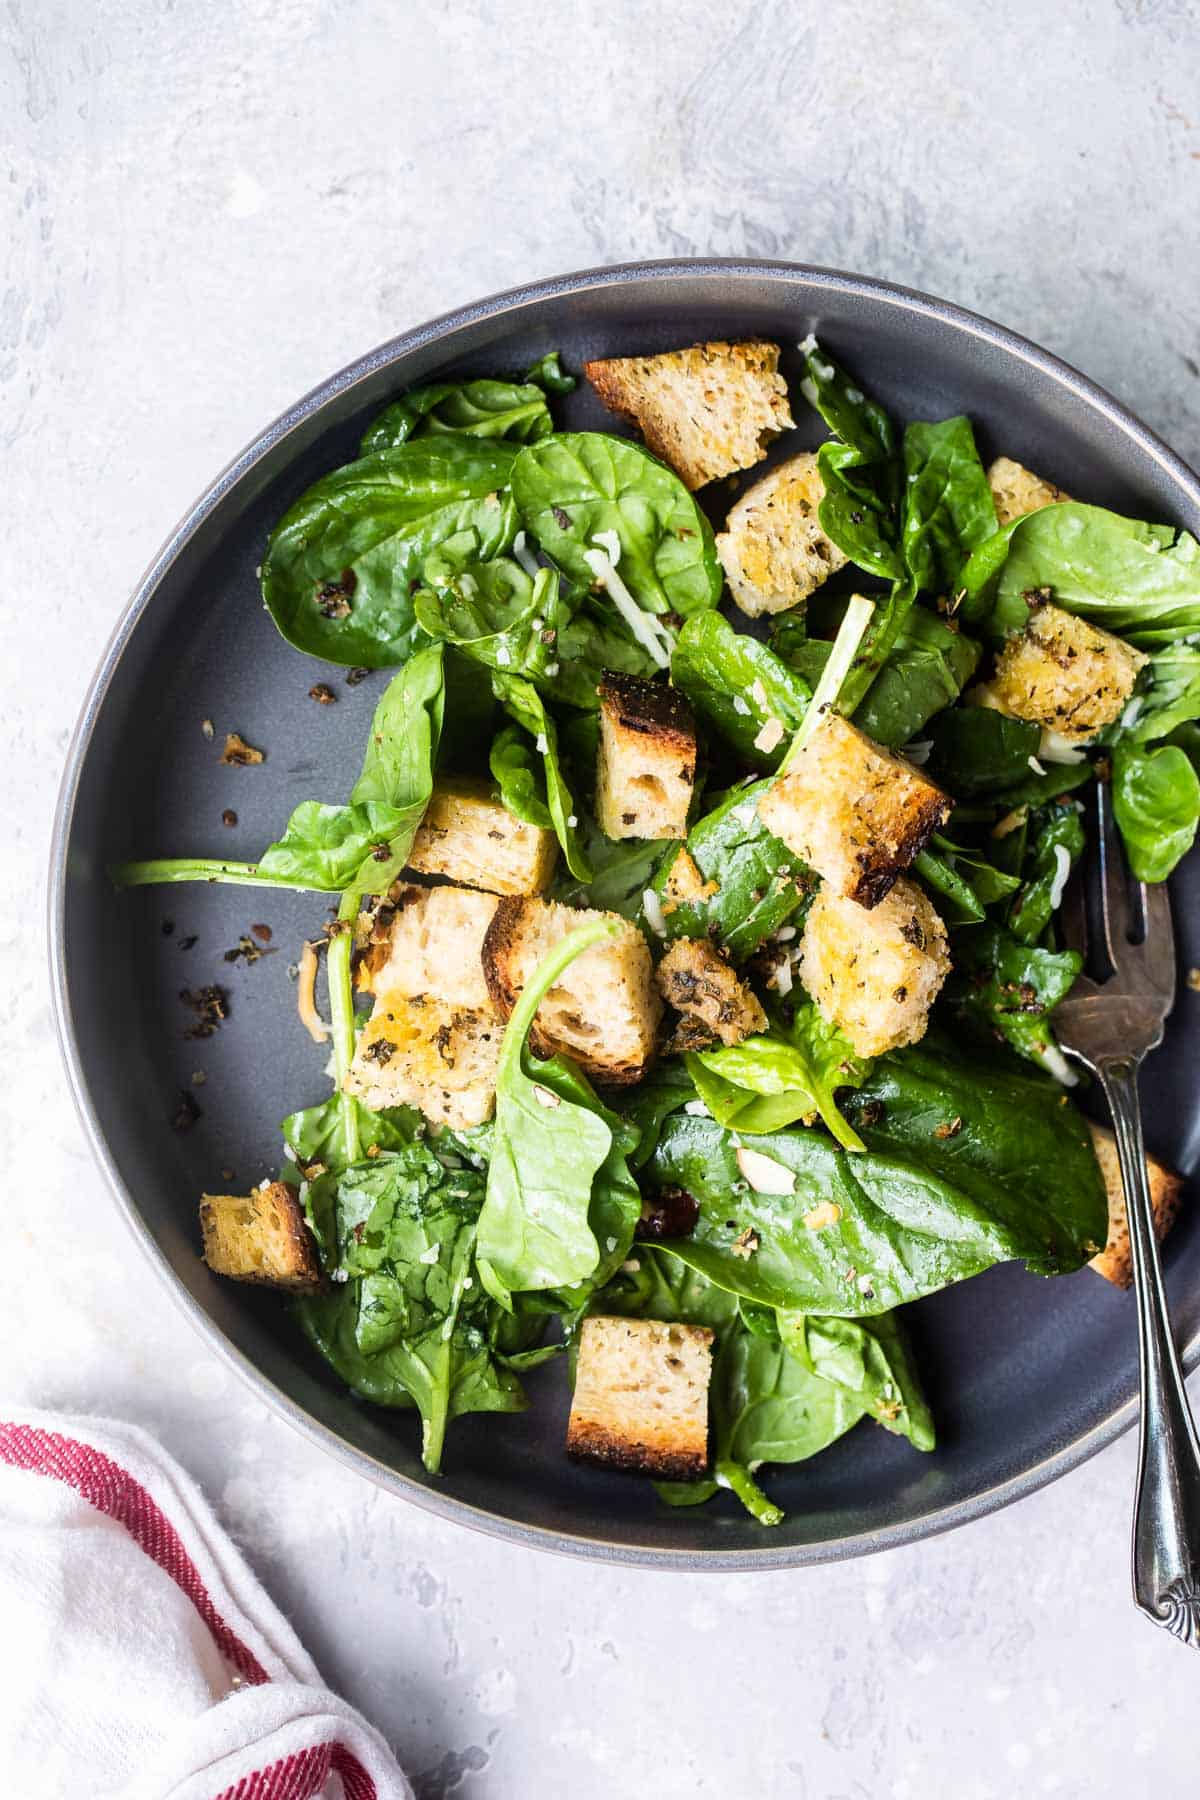 homemade croutons on top of a salad